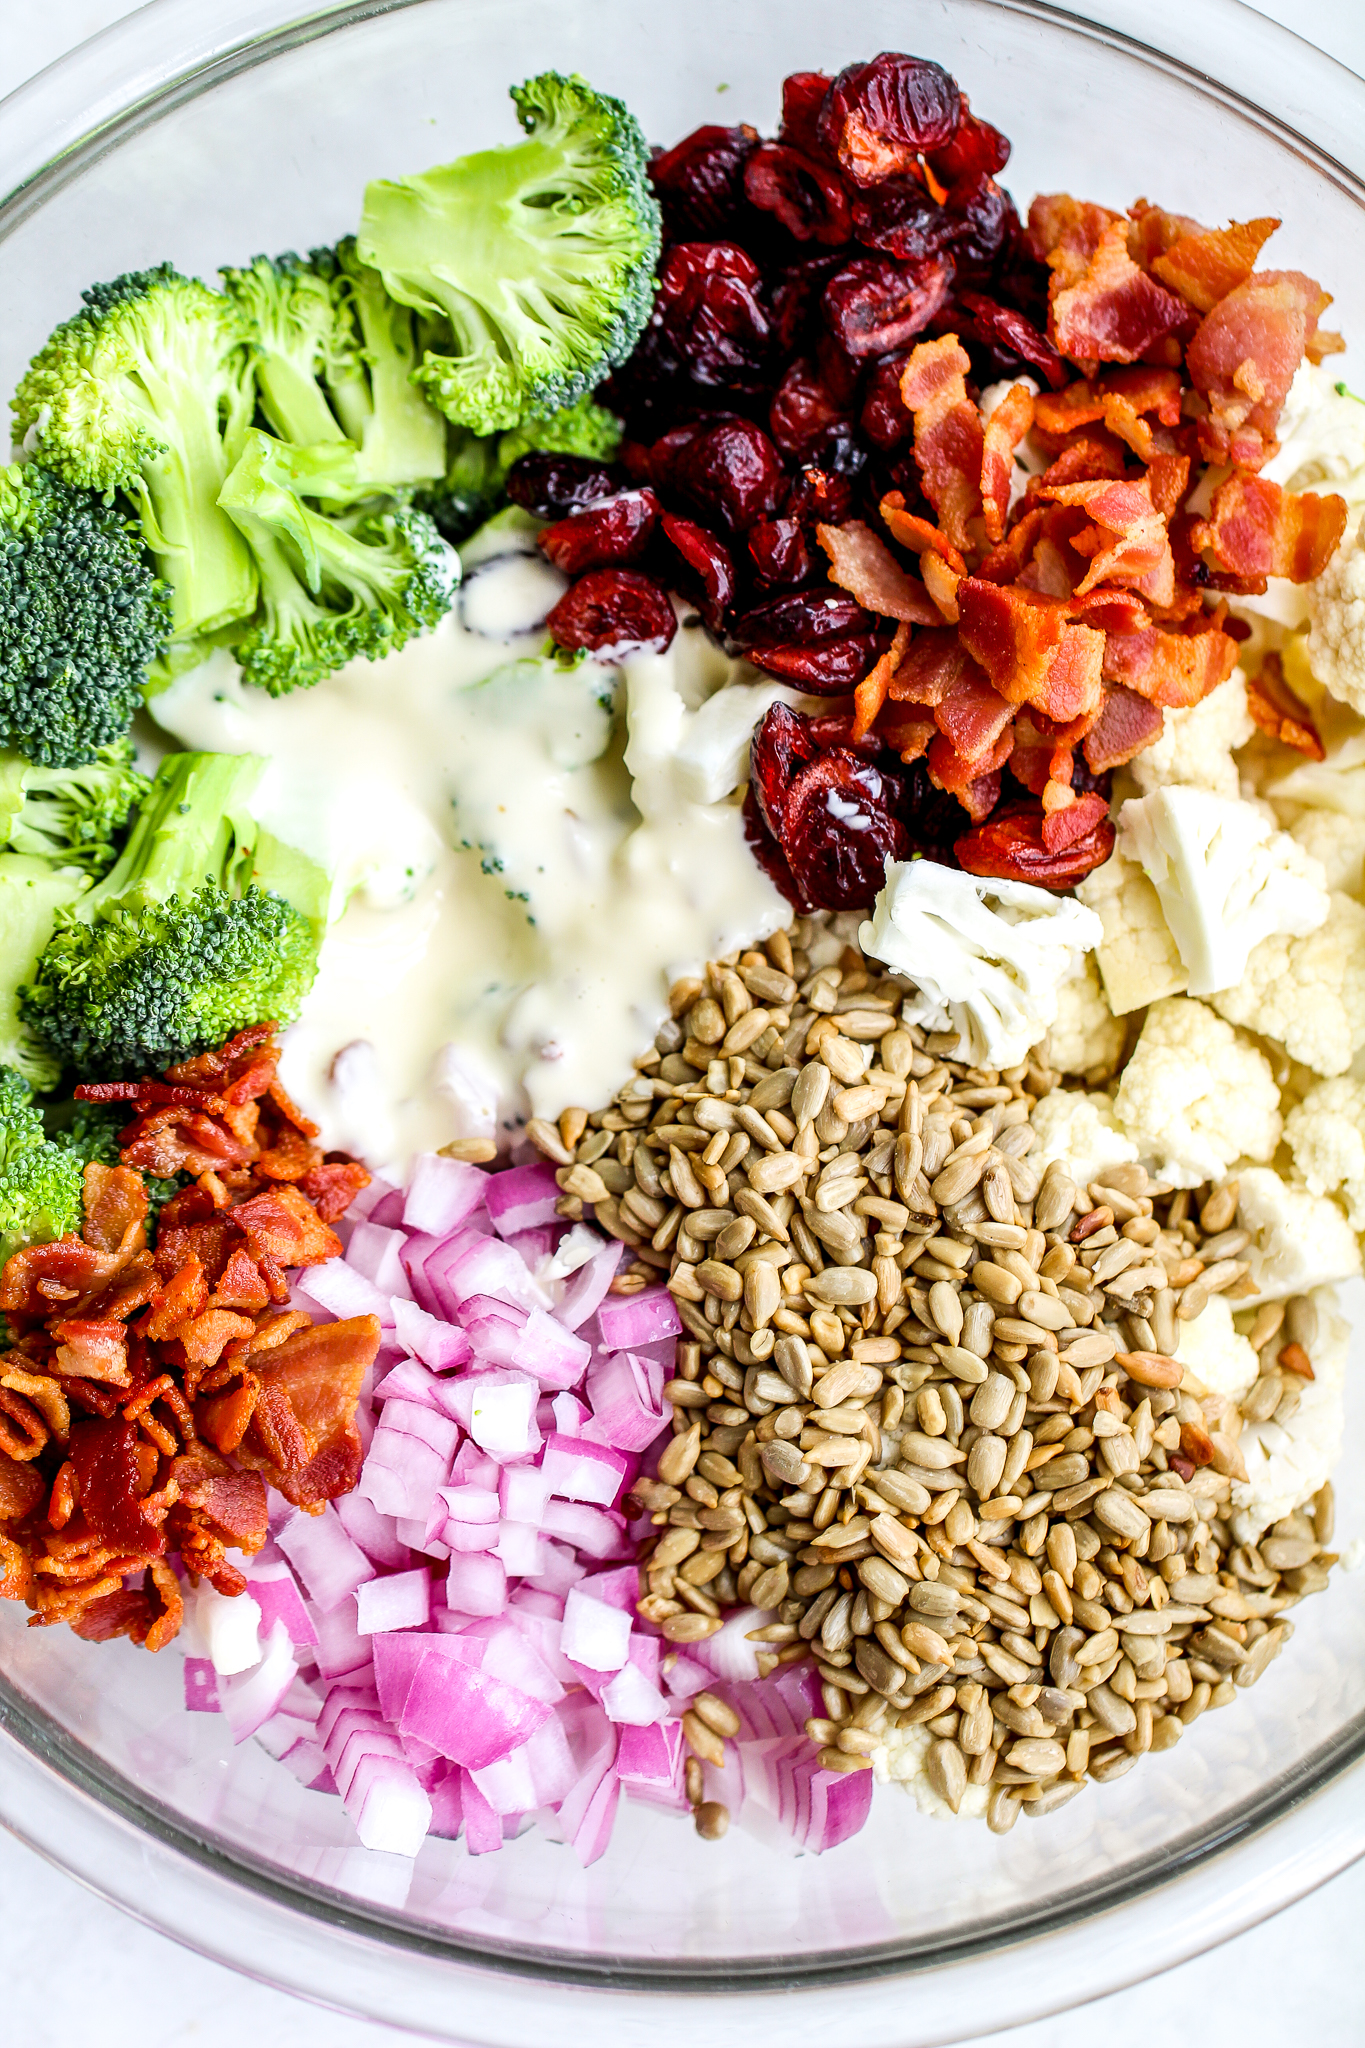 ingredients for broccoli cauliflower salad separated in a large glass mixing bowl. There are broccoli and cauliflower florets, dried cranberries, chopped bacon, diced red onion, sunflower seeds and creamy dressing